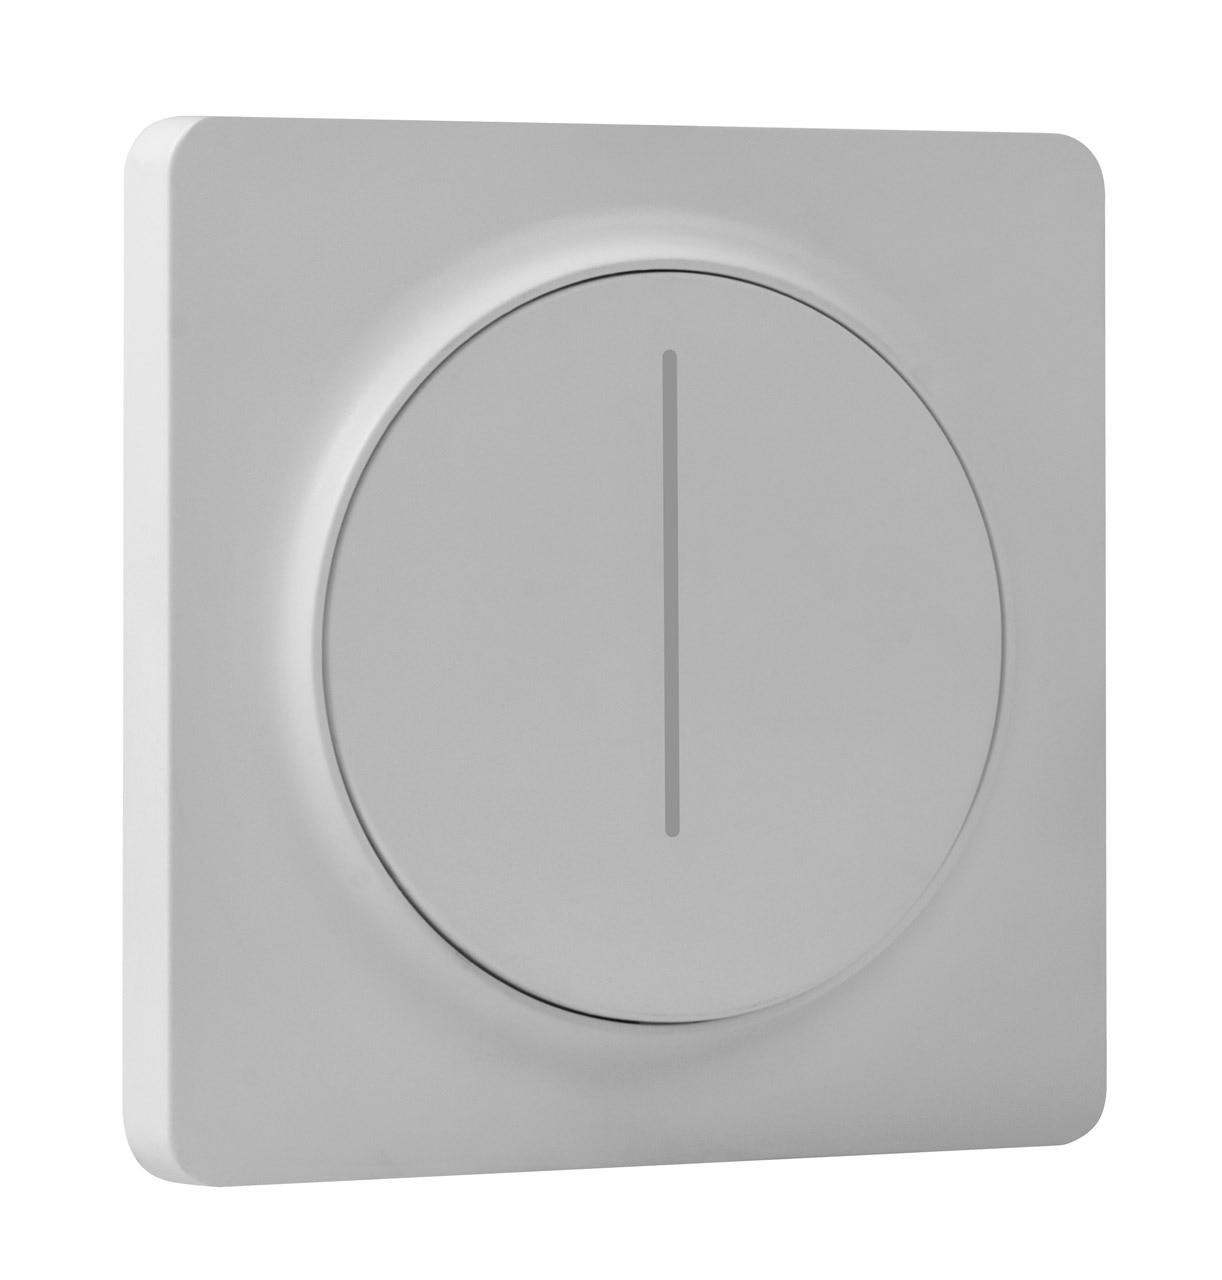 Phoebe LED Intelligent Smart Dimmer Switch 220W Touch Sensitive Wifi